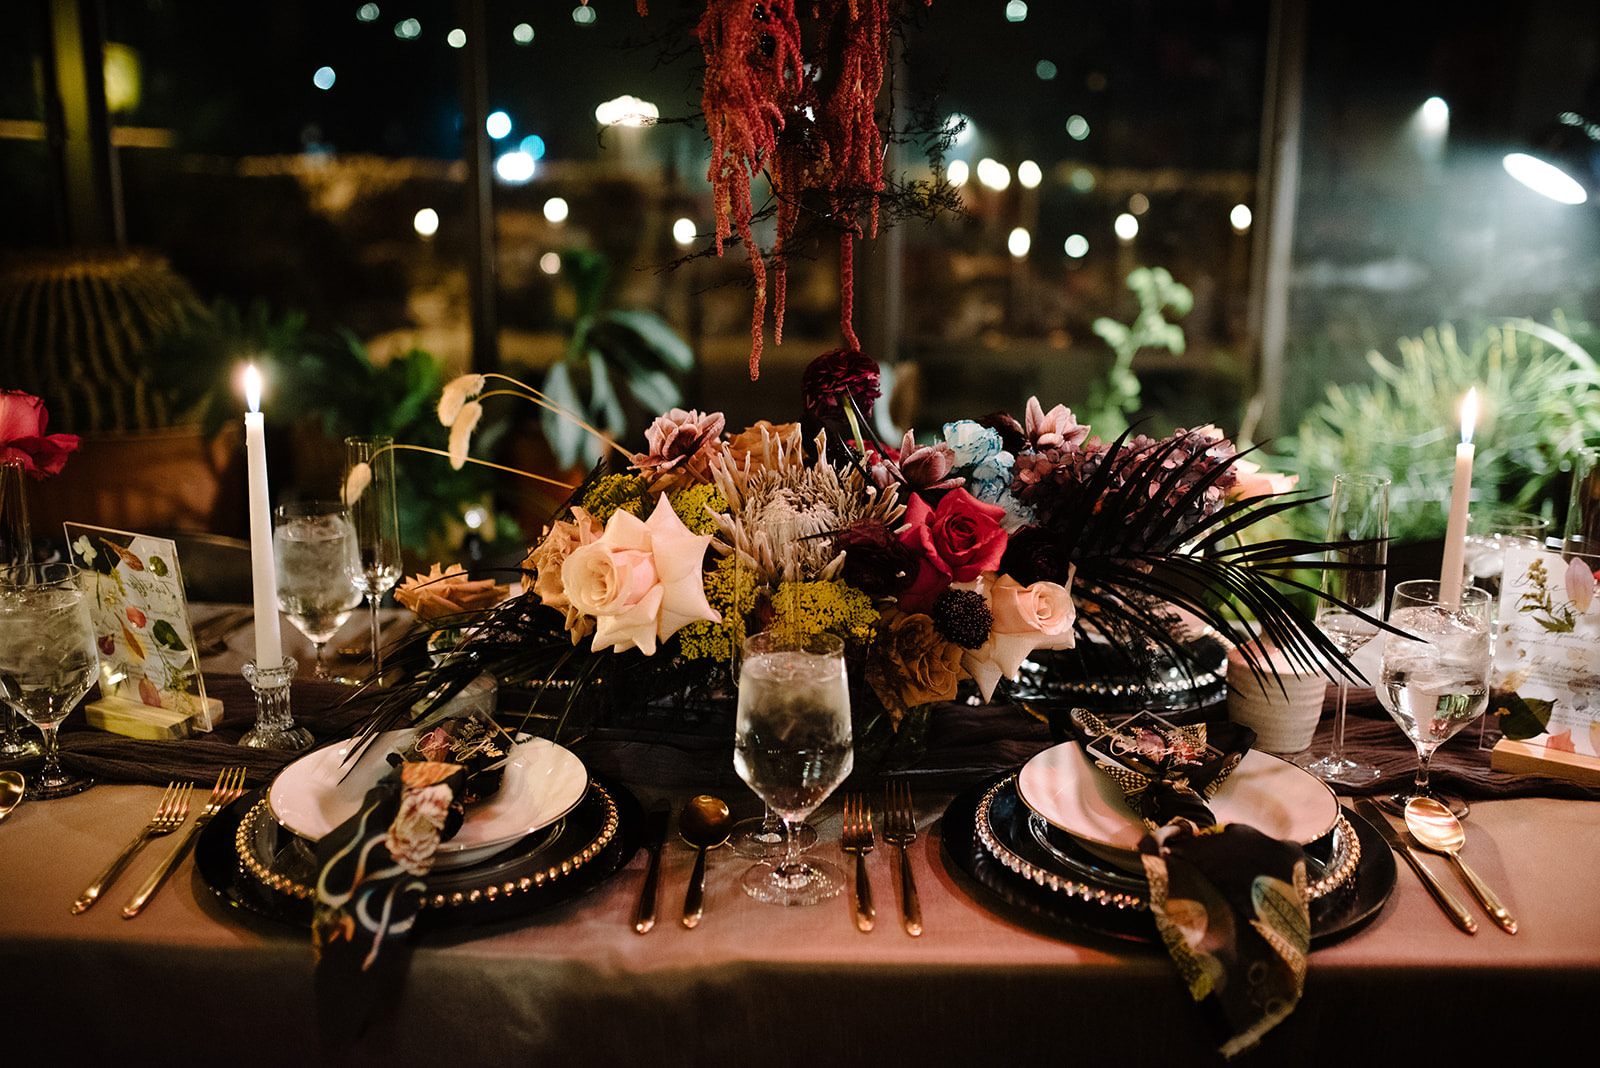 Heirloom Catering wedding reception table setting.